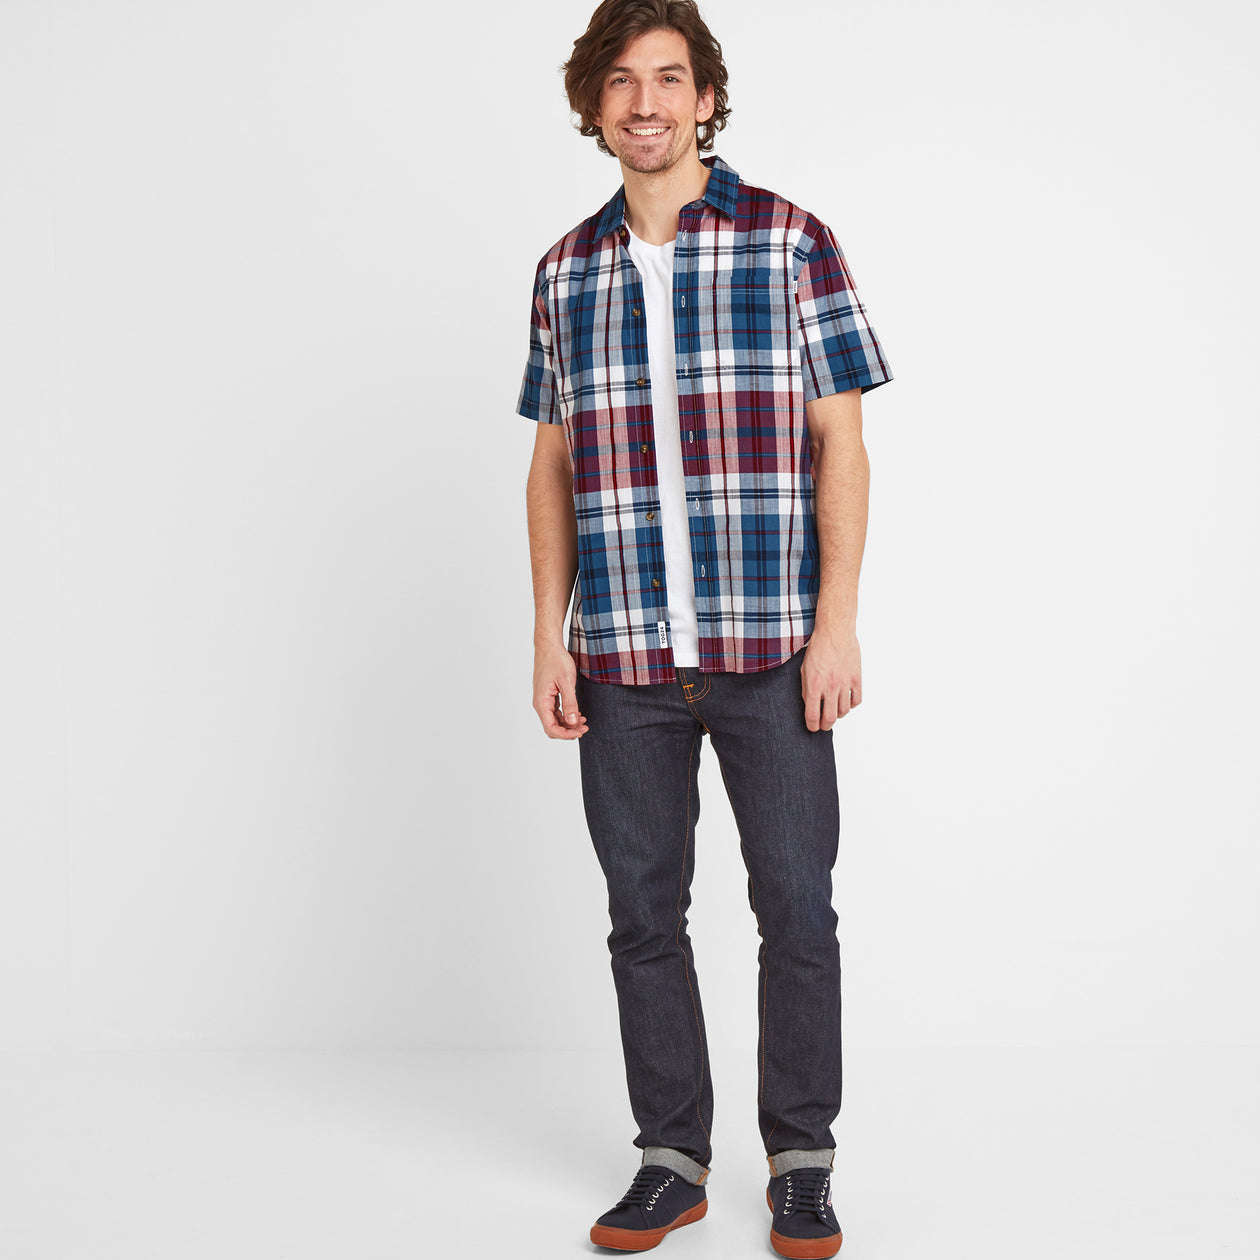 Wickley Mens Check Shirt - Rio Red image 4